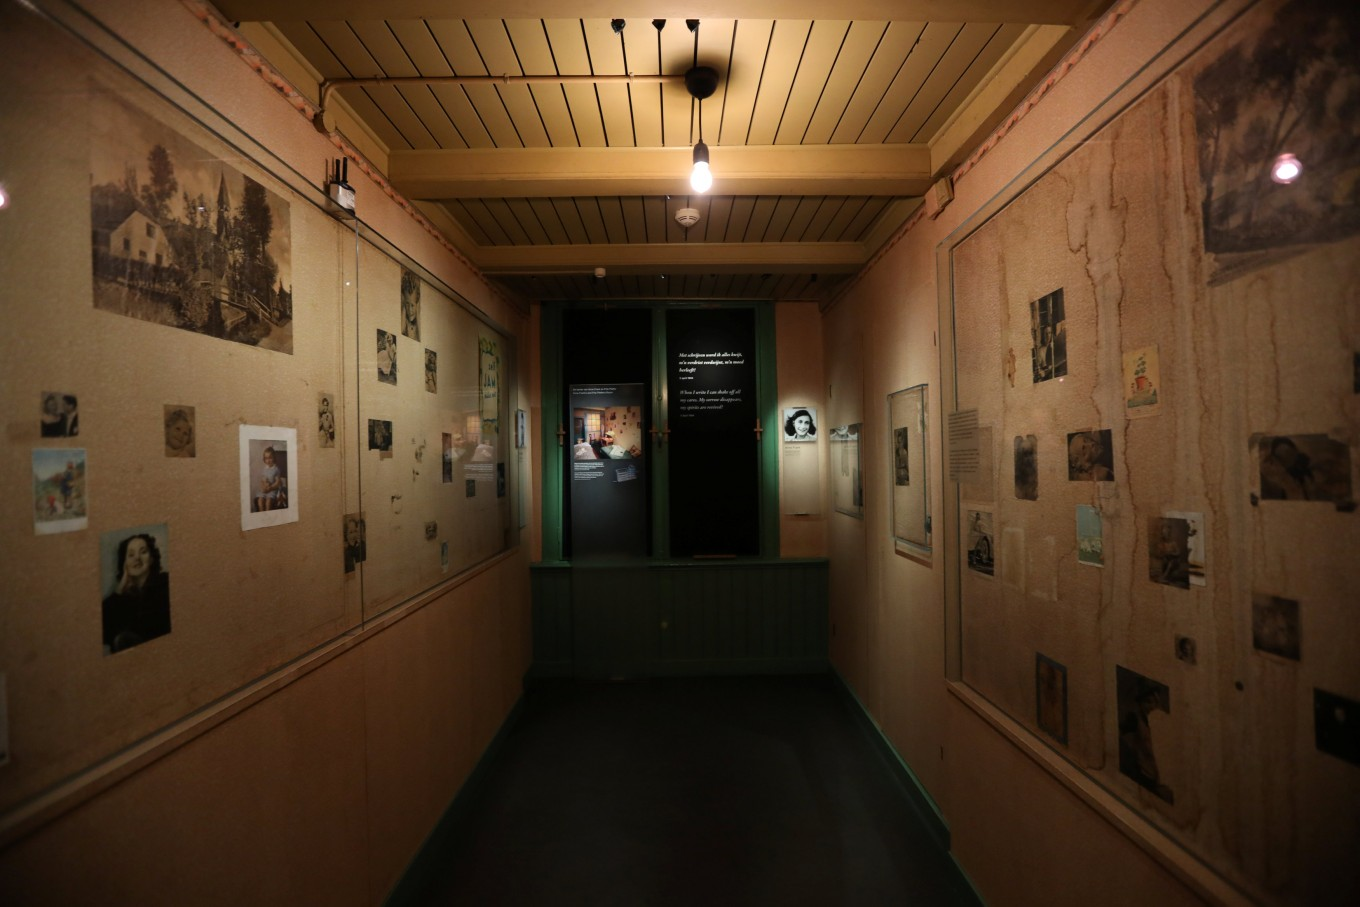 Tour Anne Frank's childhood home through Google Street View